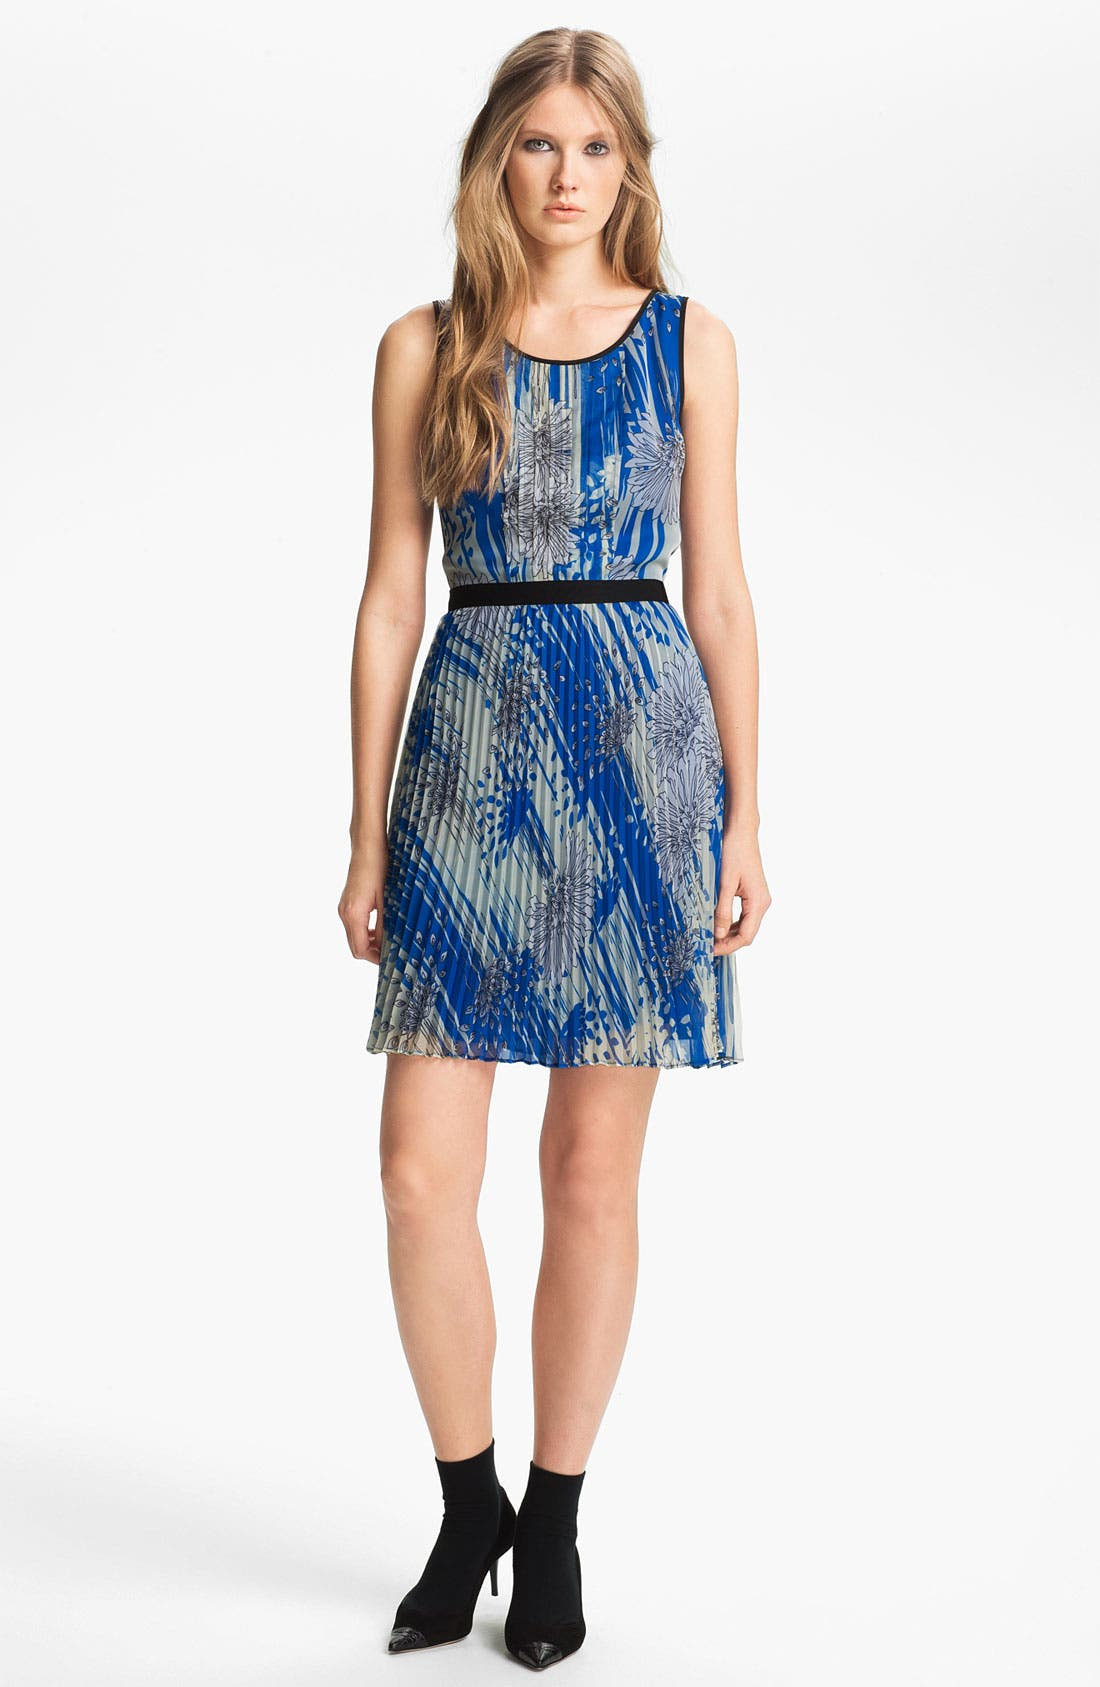 Alternate Image 1 Selected - Miss Wu Print Chiffon Dress (Nordstrom Exclusive)